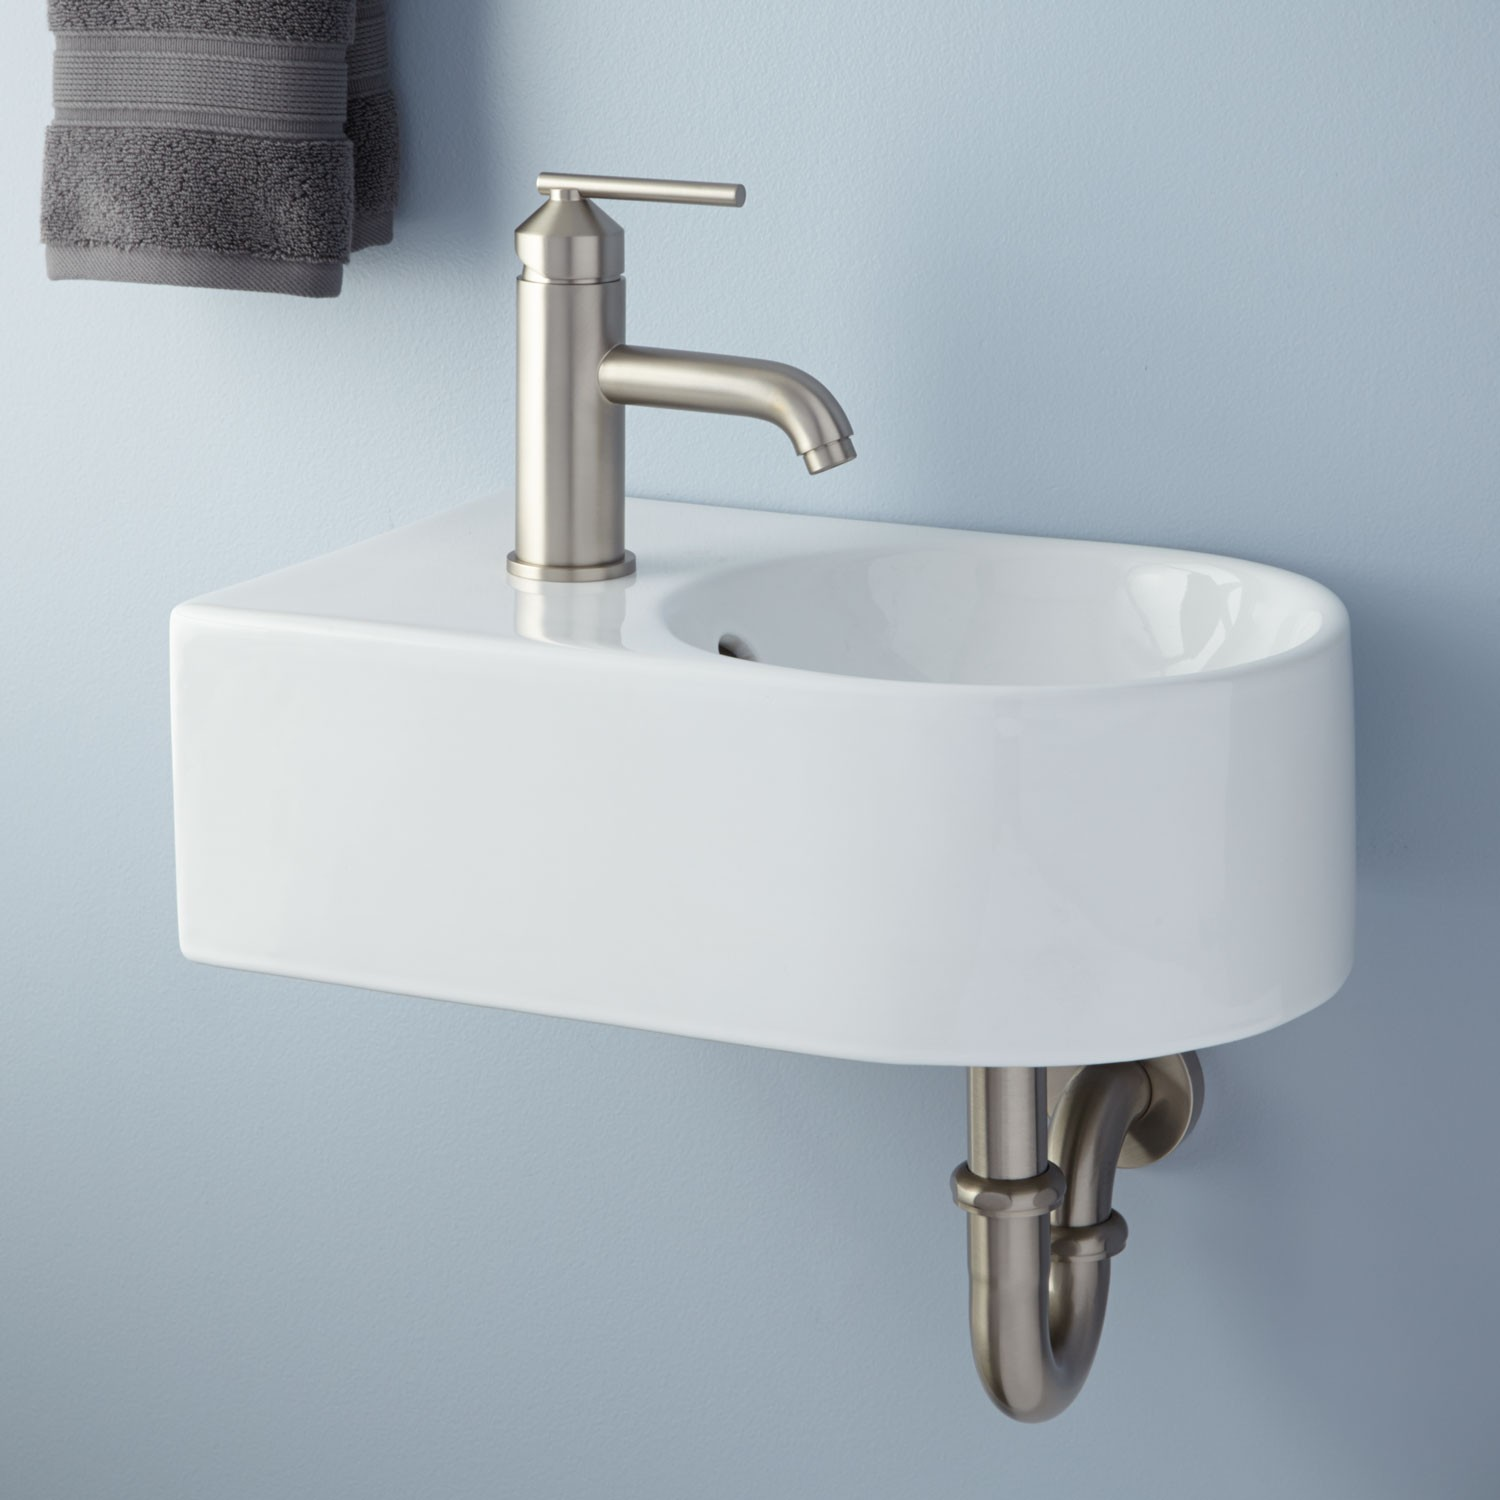 Small Wall Mounted Sink: A Good Choice for Space-Challenged Bathroom ...